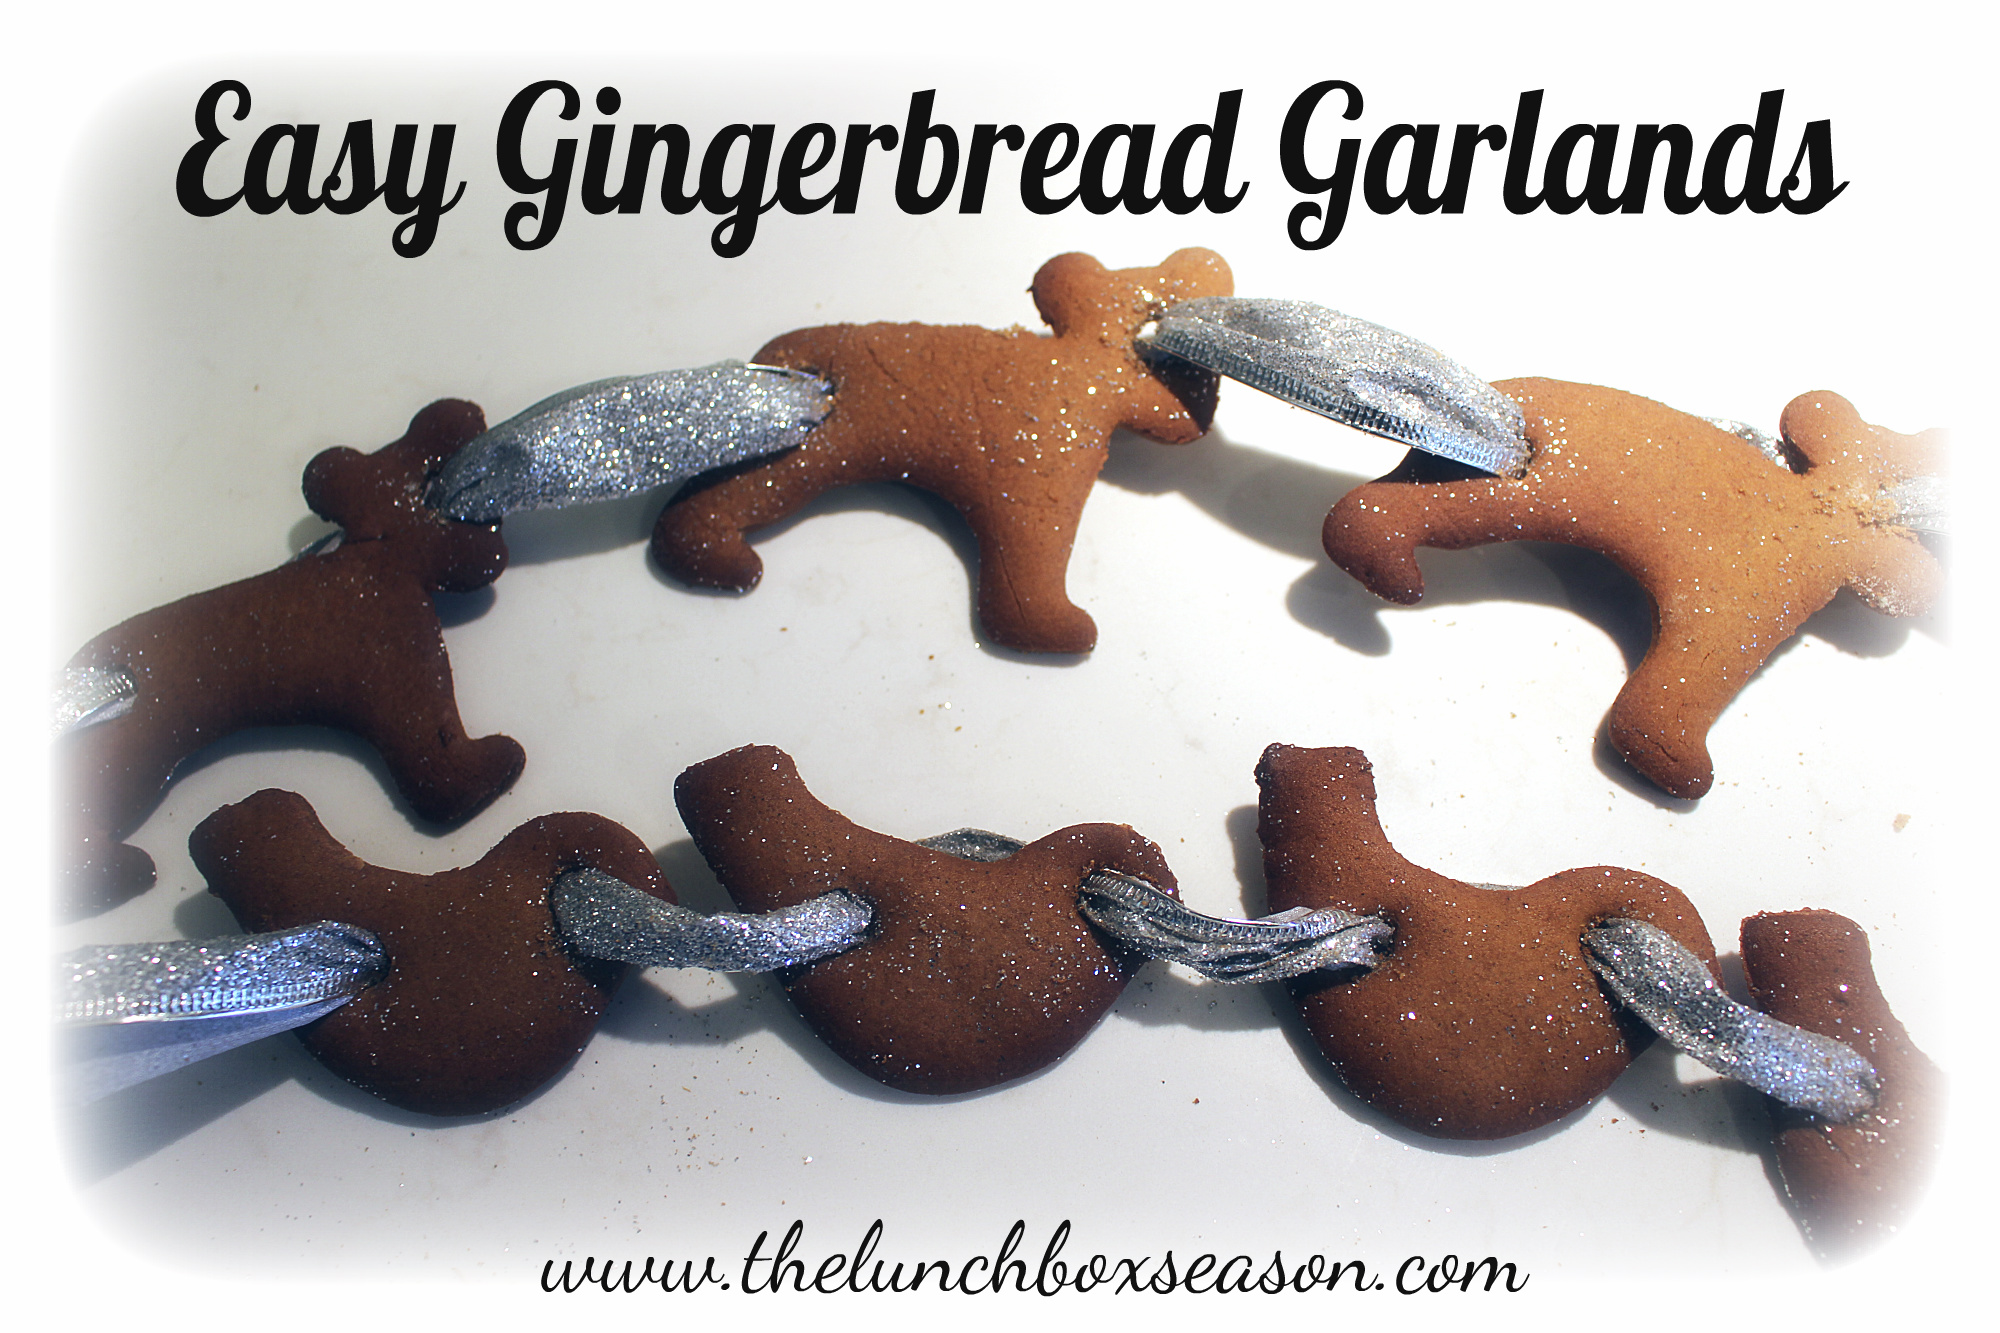 Easy Gingerbread Garlands for Advent from The Lunchbox Season